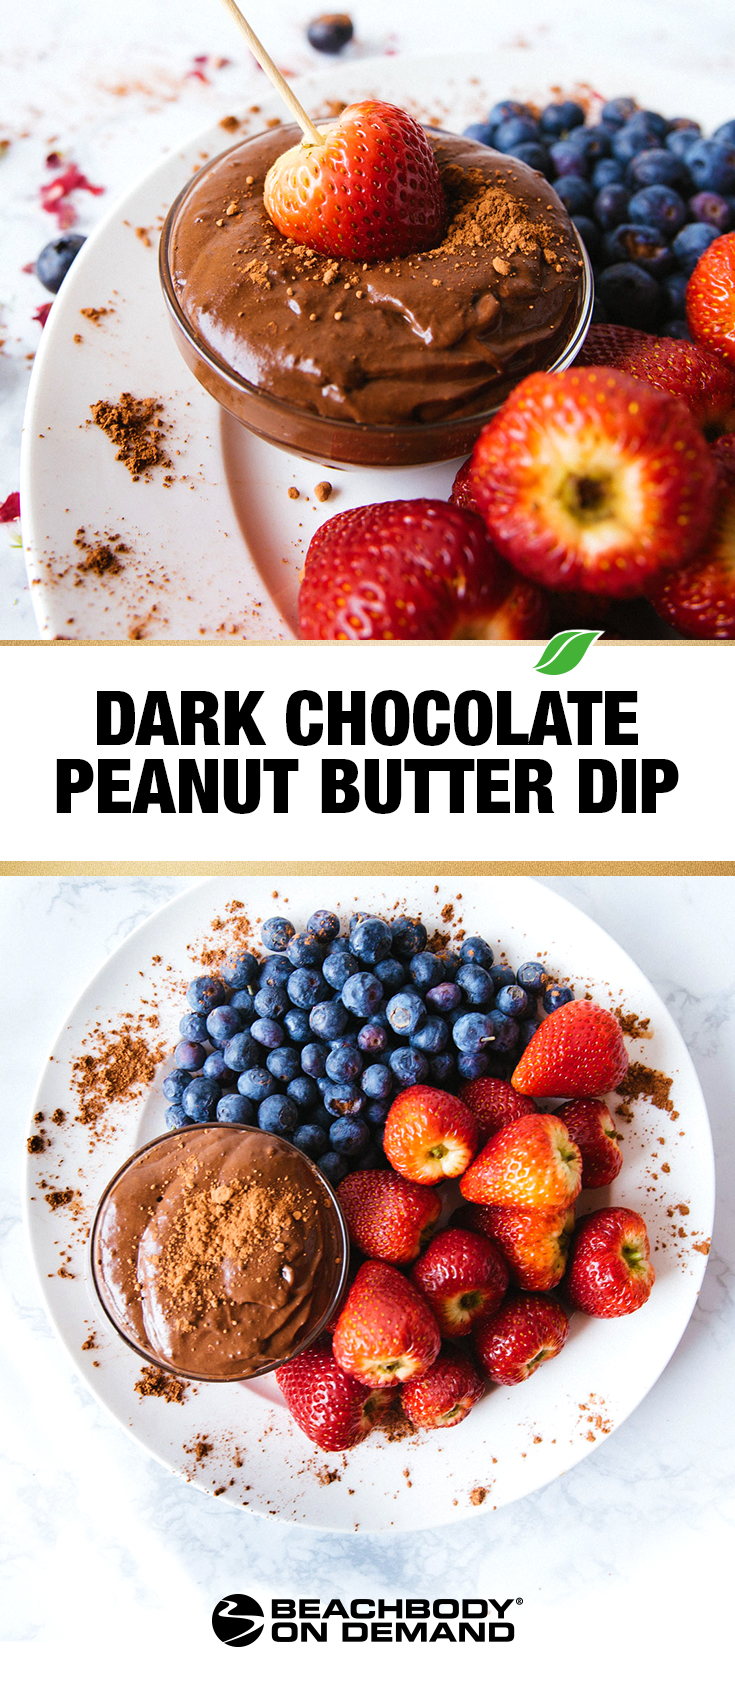 Dark Chocolate Peanut Butter Dip Recipe